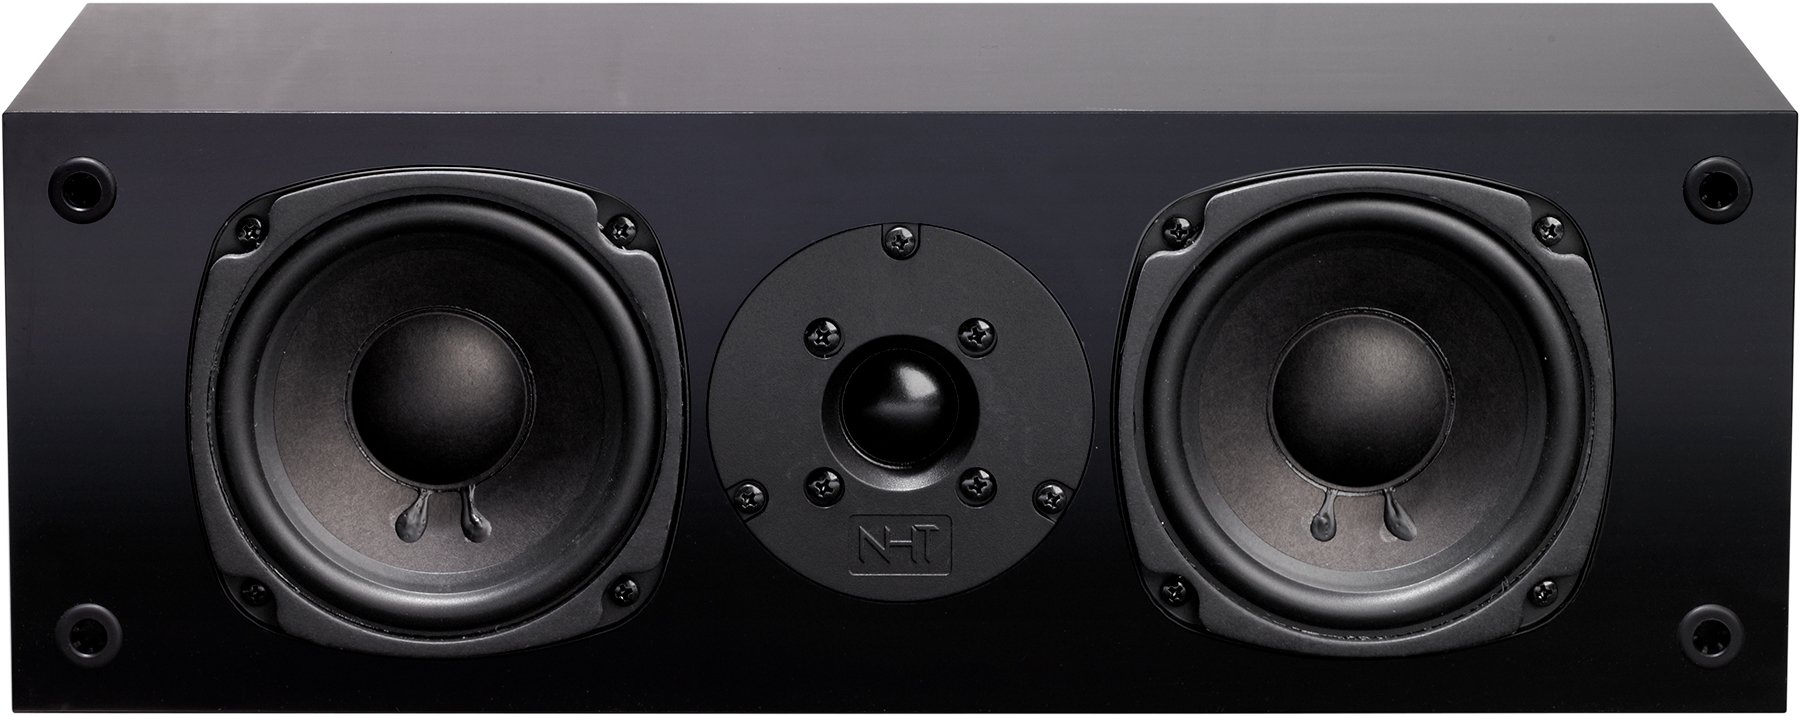 NHT Super Center 2.1 Center Channel Speaker, Black